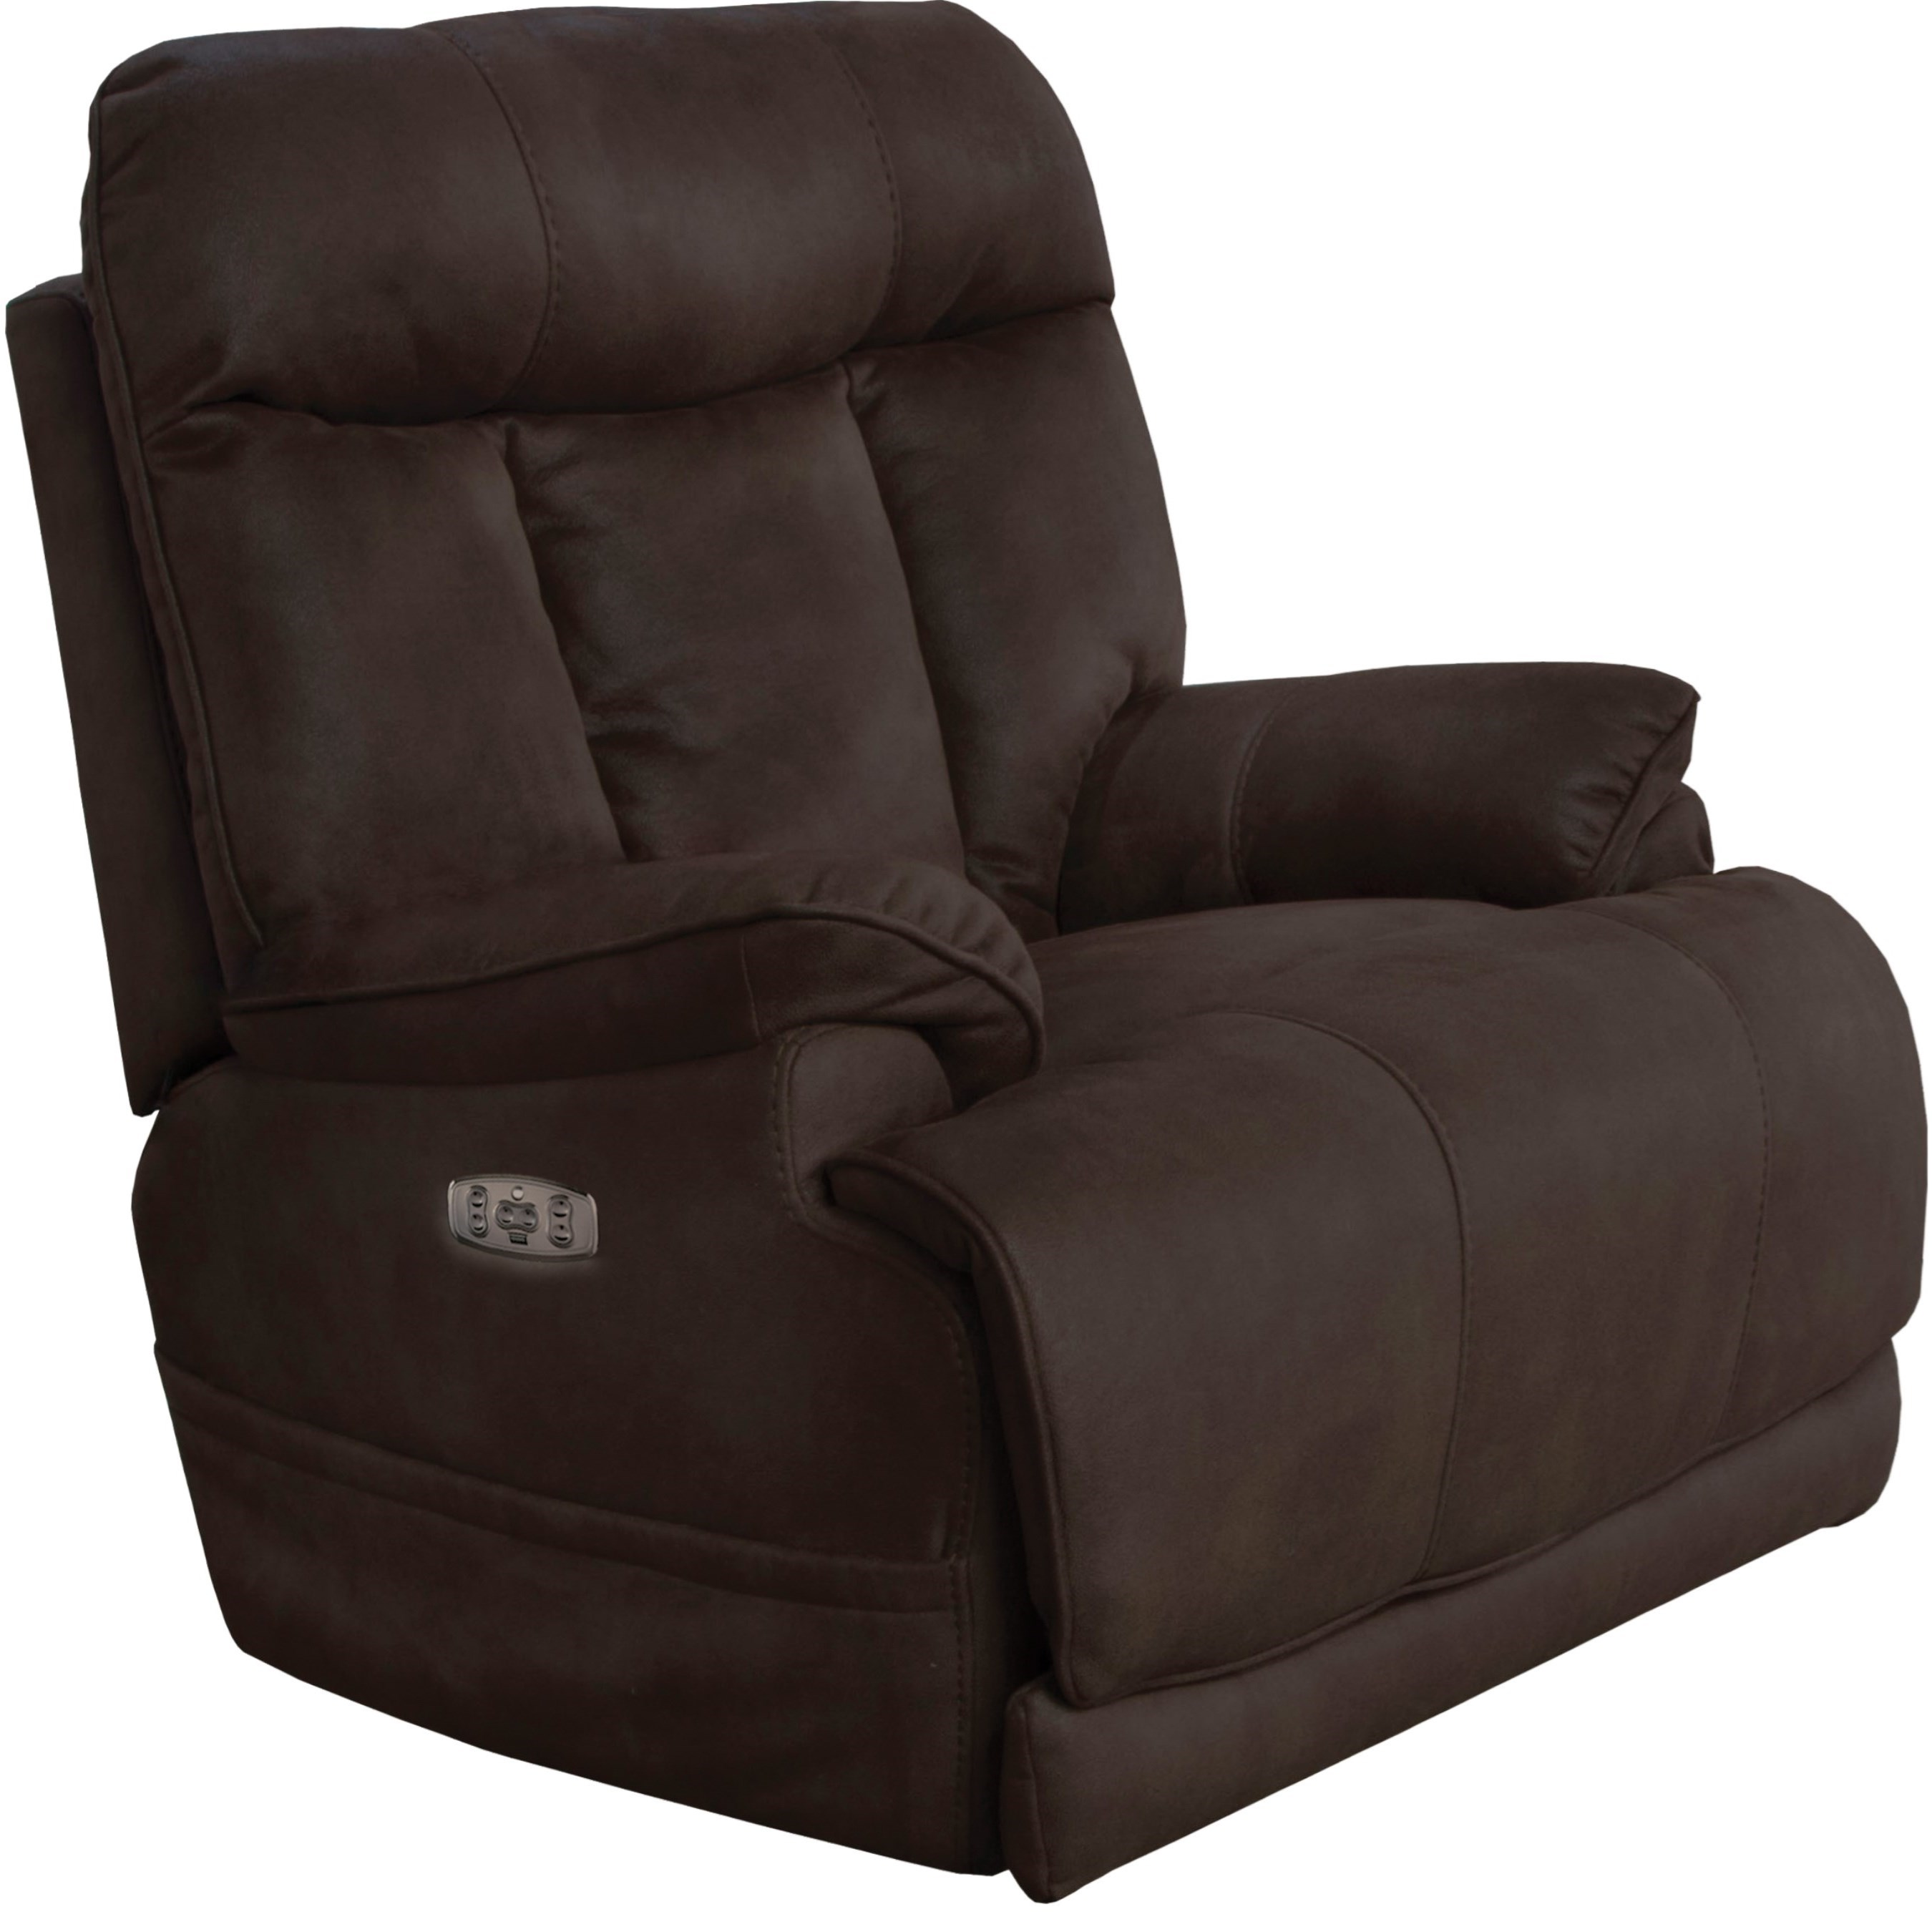 Catnapper Amos Casual Power Lay Flat Recliner With Power